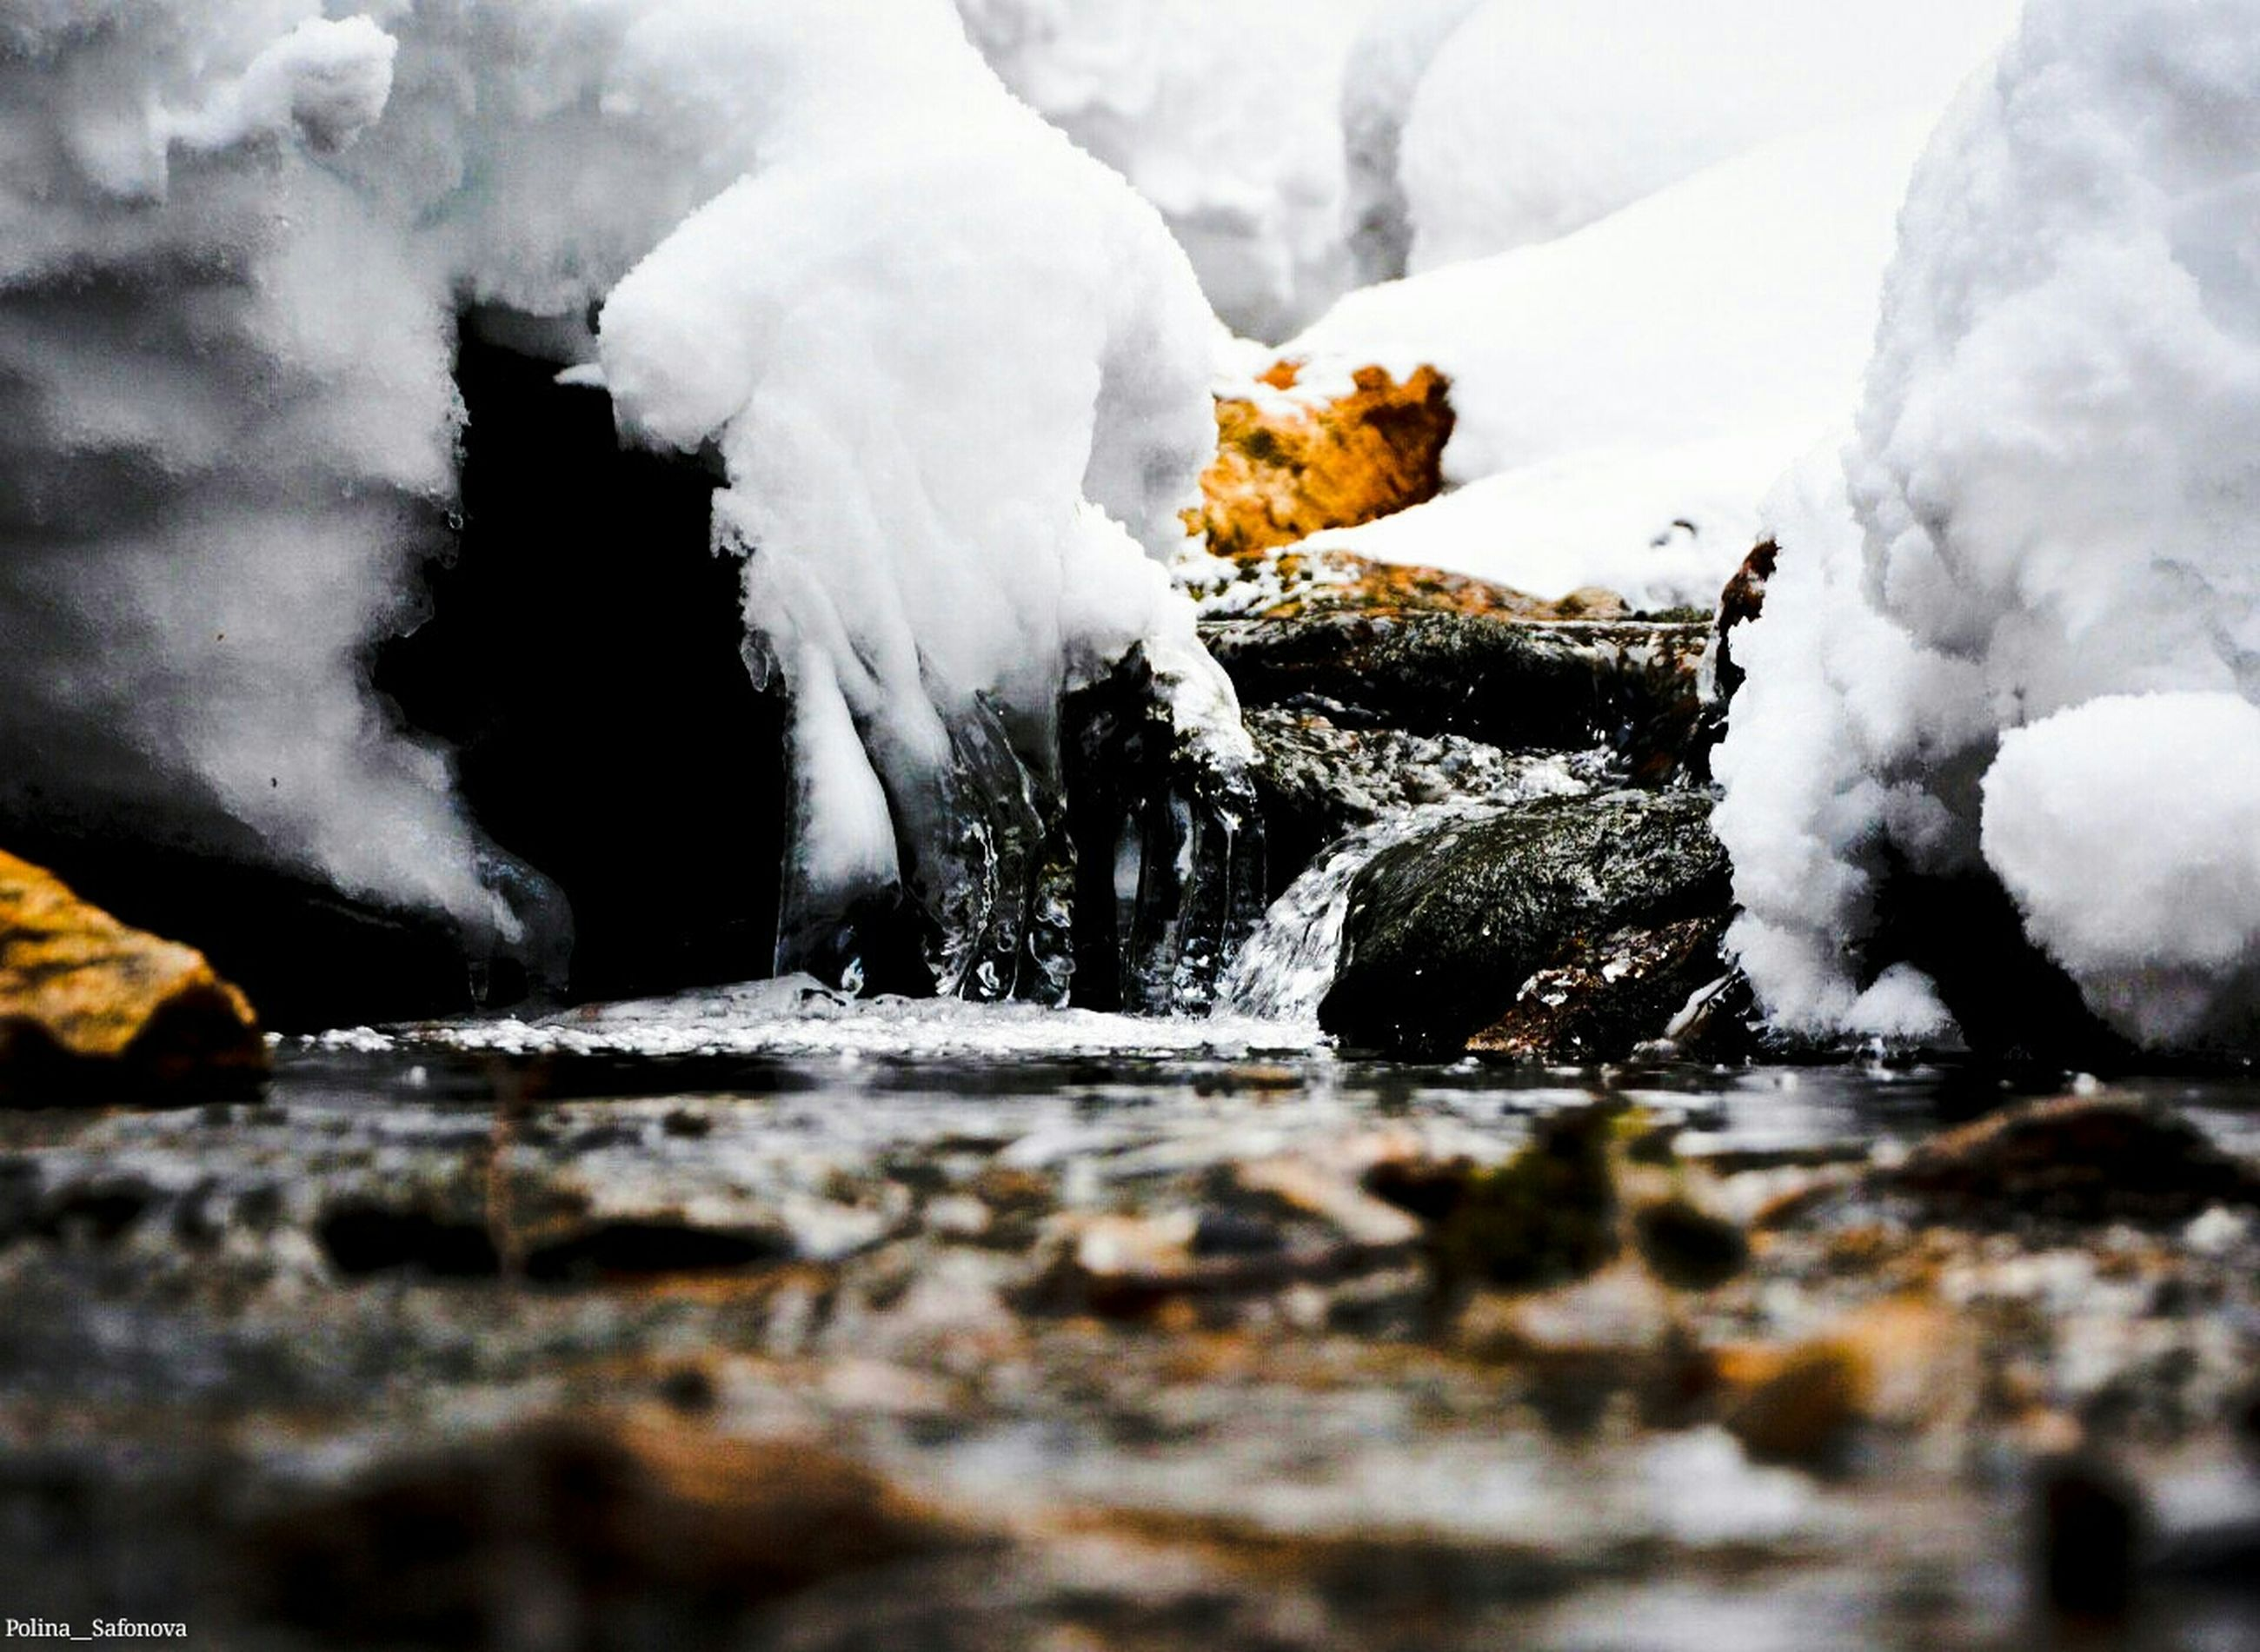 winter, snow, cold temperature, season, weather, frozen, white color, covering, nature, ice, beauty in nature, selective focus, tranquility, focus on foreground, covered, day, outdoors, close-up, no people, rock - object